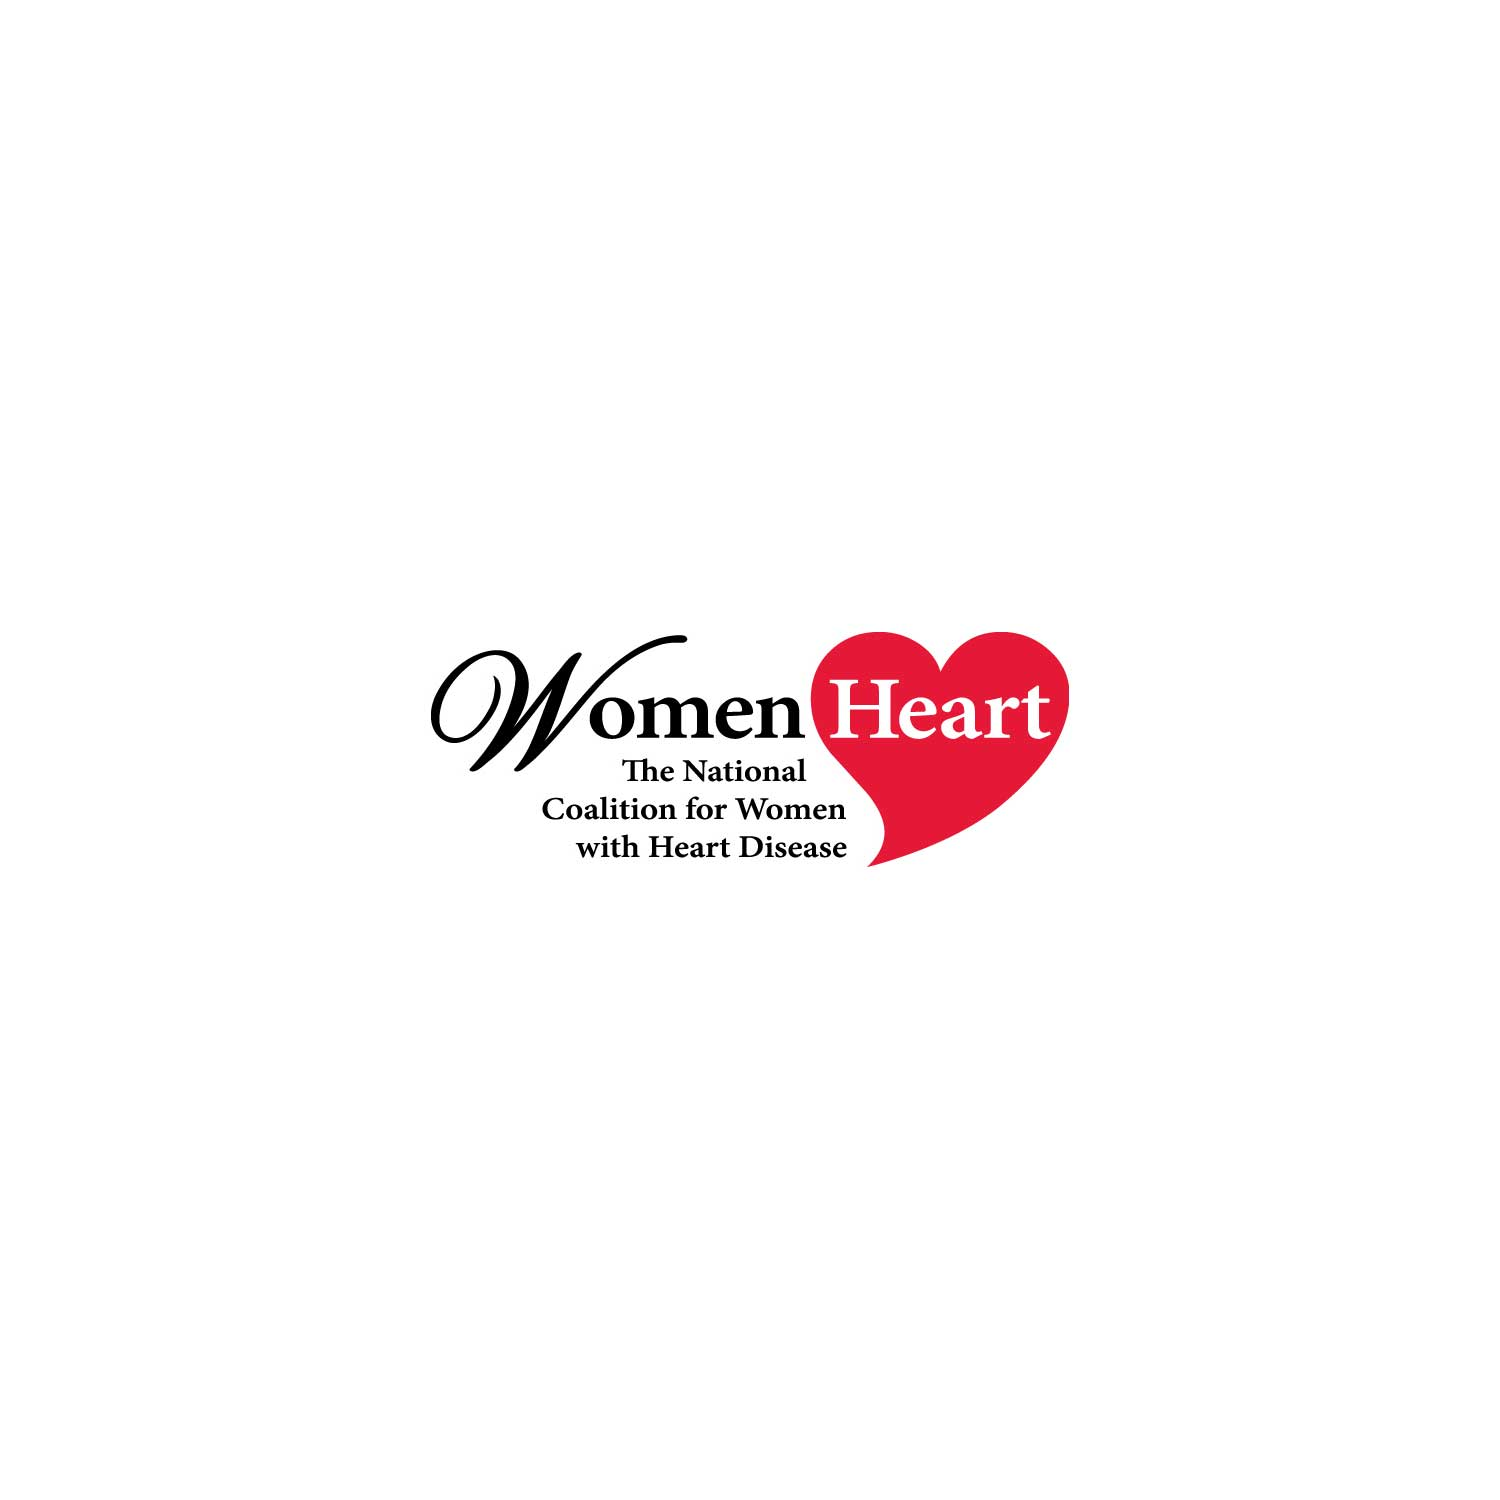 Quaker teamed up WomenHeart, a coalition dedicated to helping women with heart disease